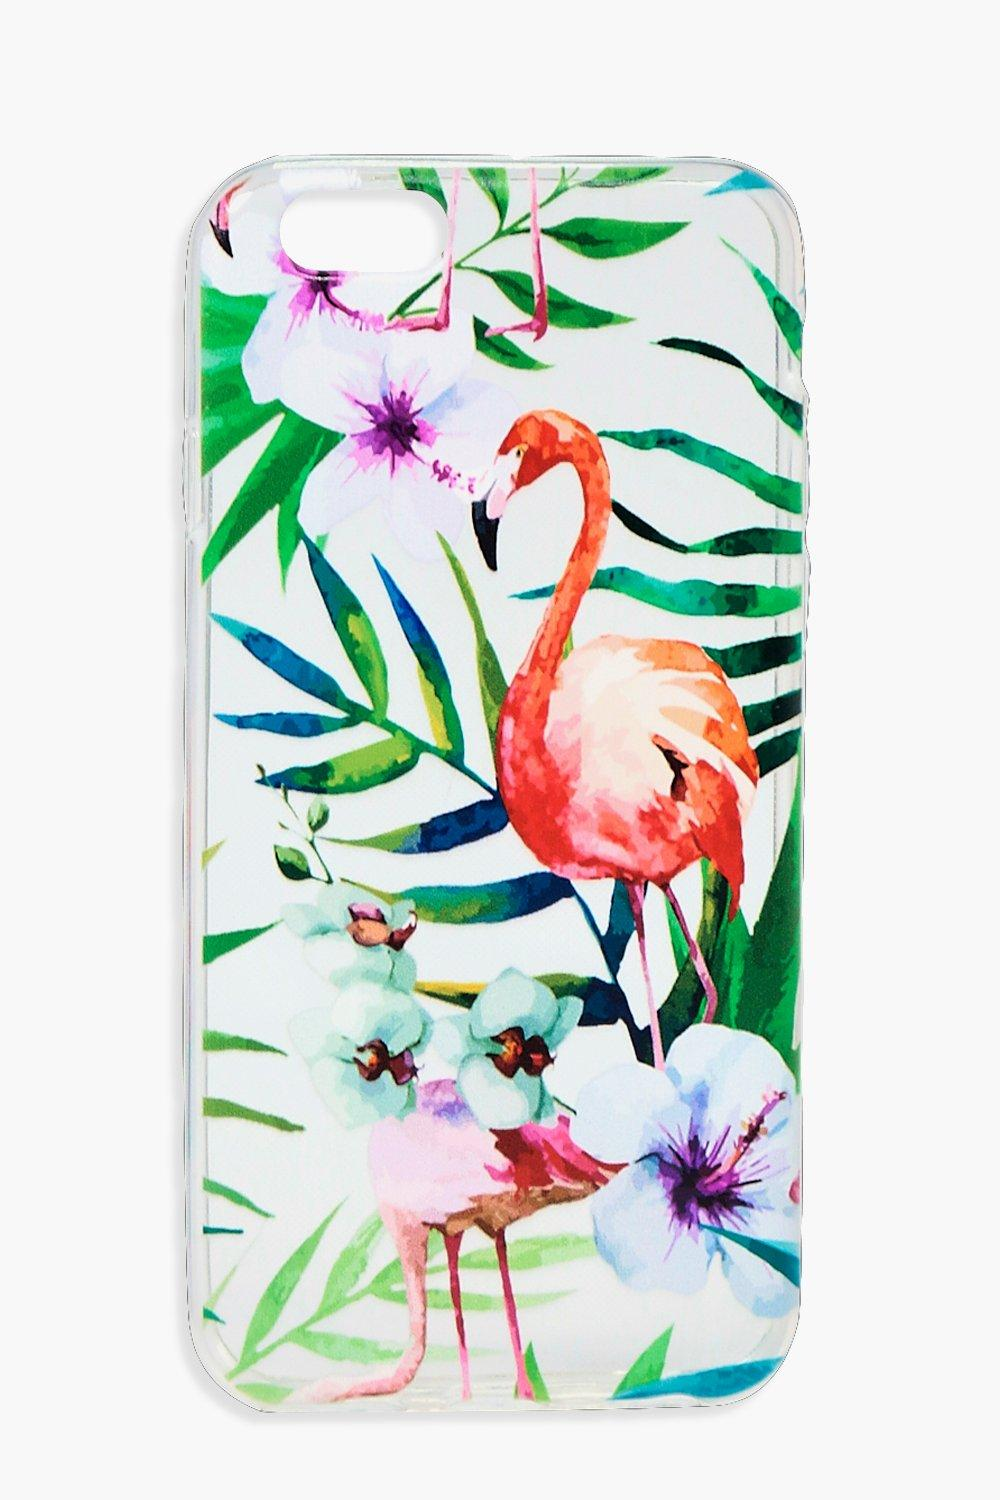 Flamingo iPhone 6 Case - multi - Tropical Flamingo